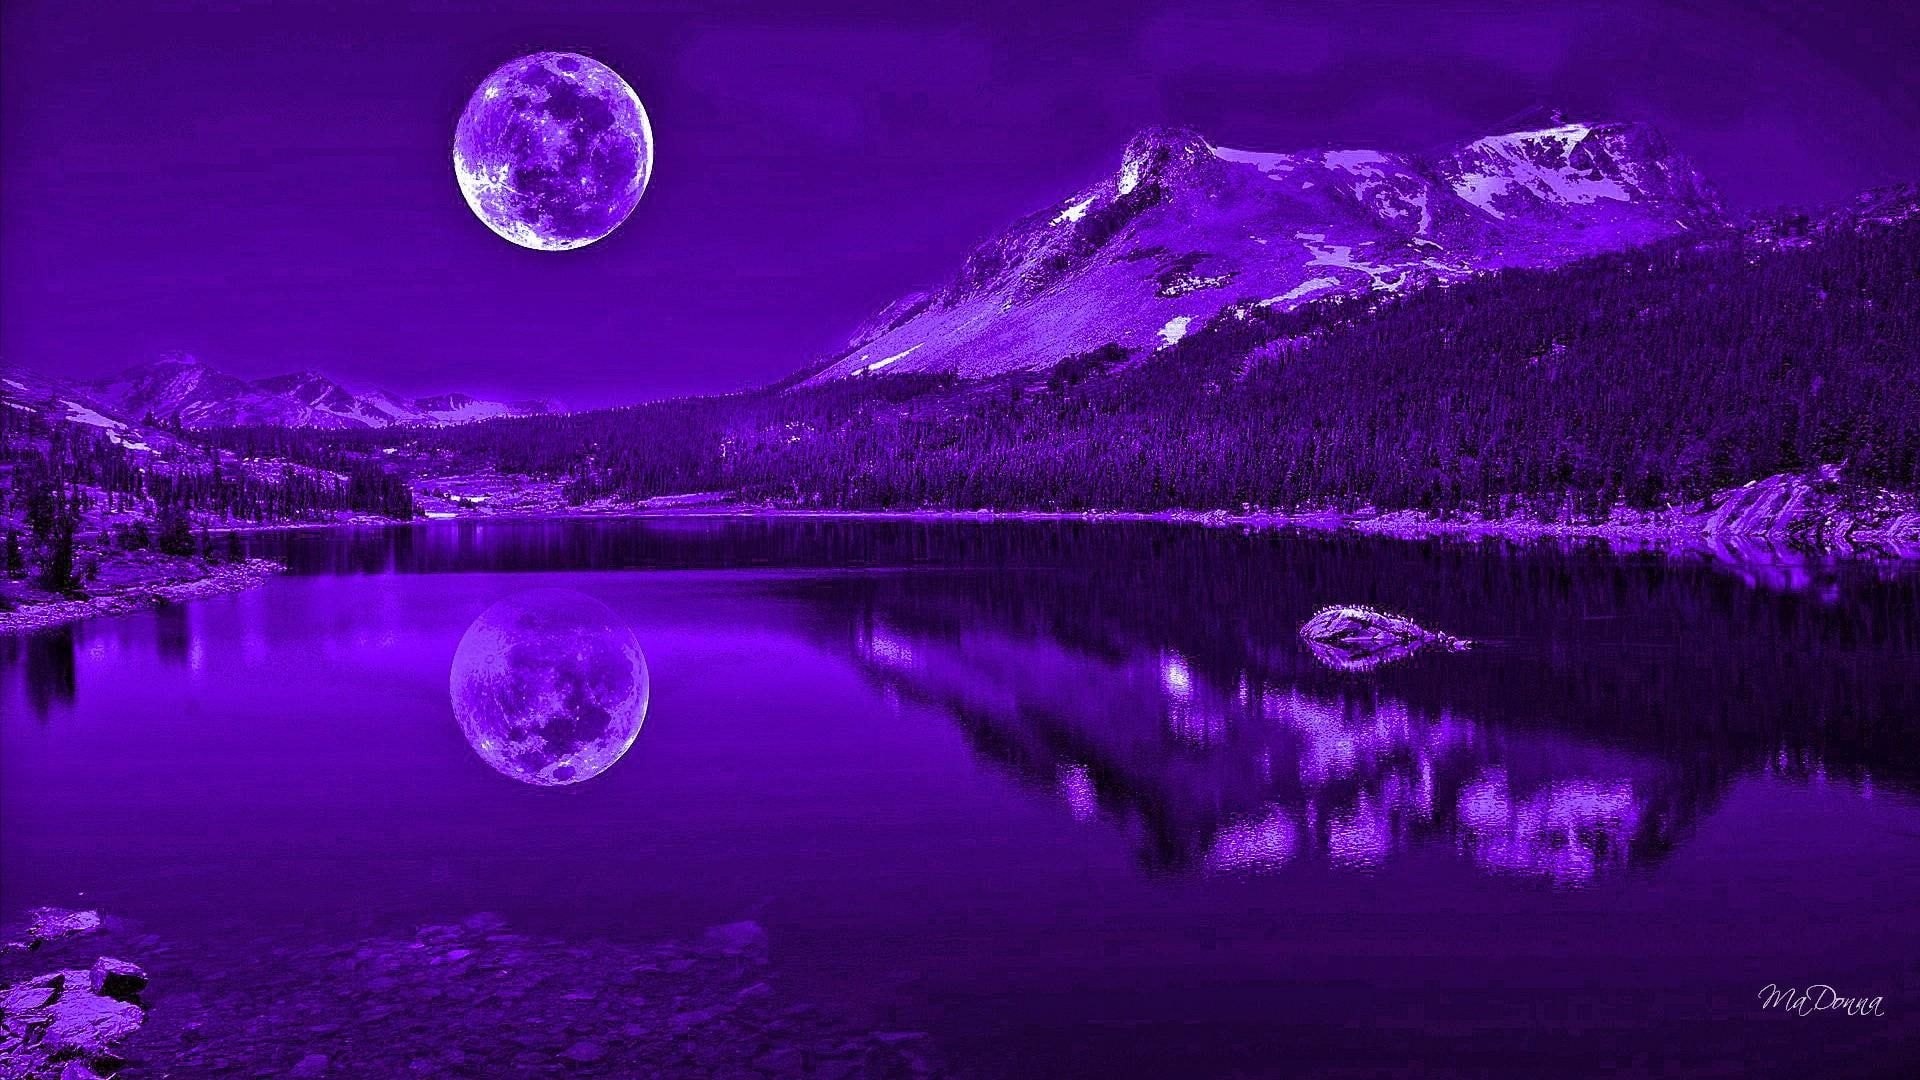 Purple Nights Reflection Reflection Full Moon Mysterious Lake Mountains Purple Nature An In 2020 Night Reflection Beautiful Nature Wallpaper Full Moon Photography